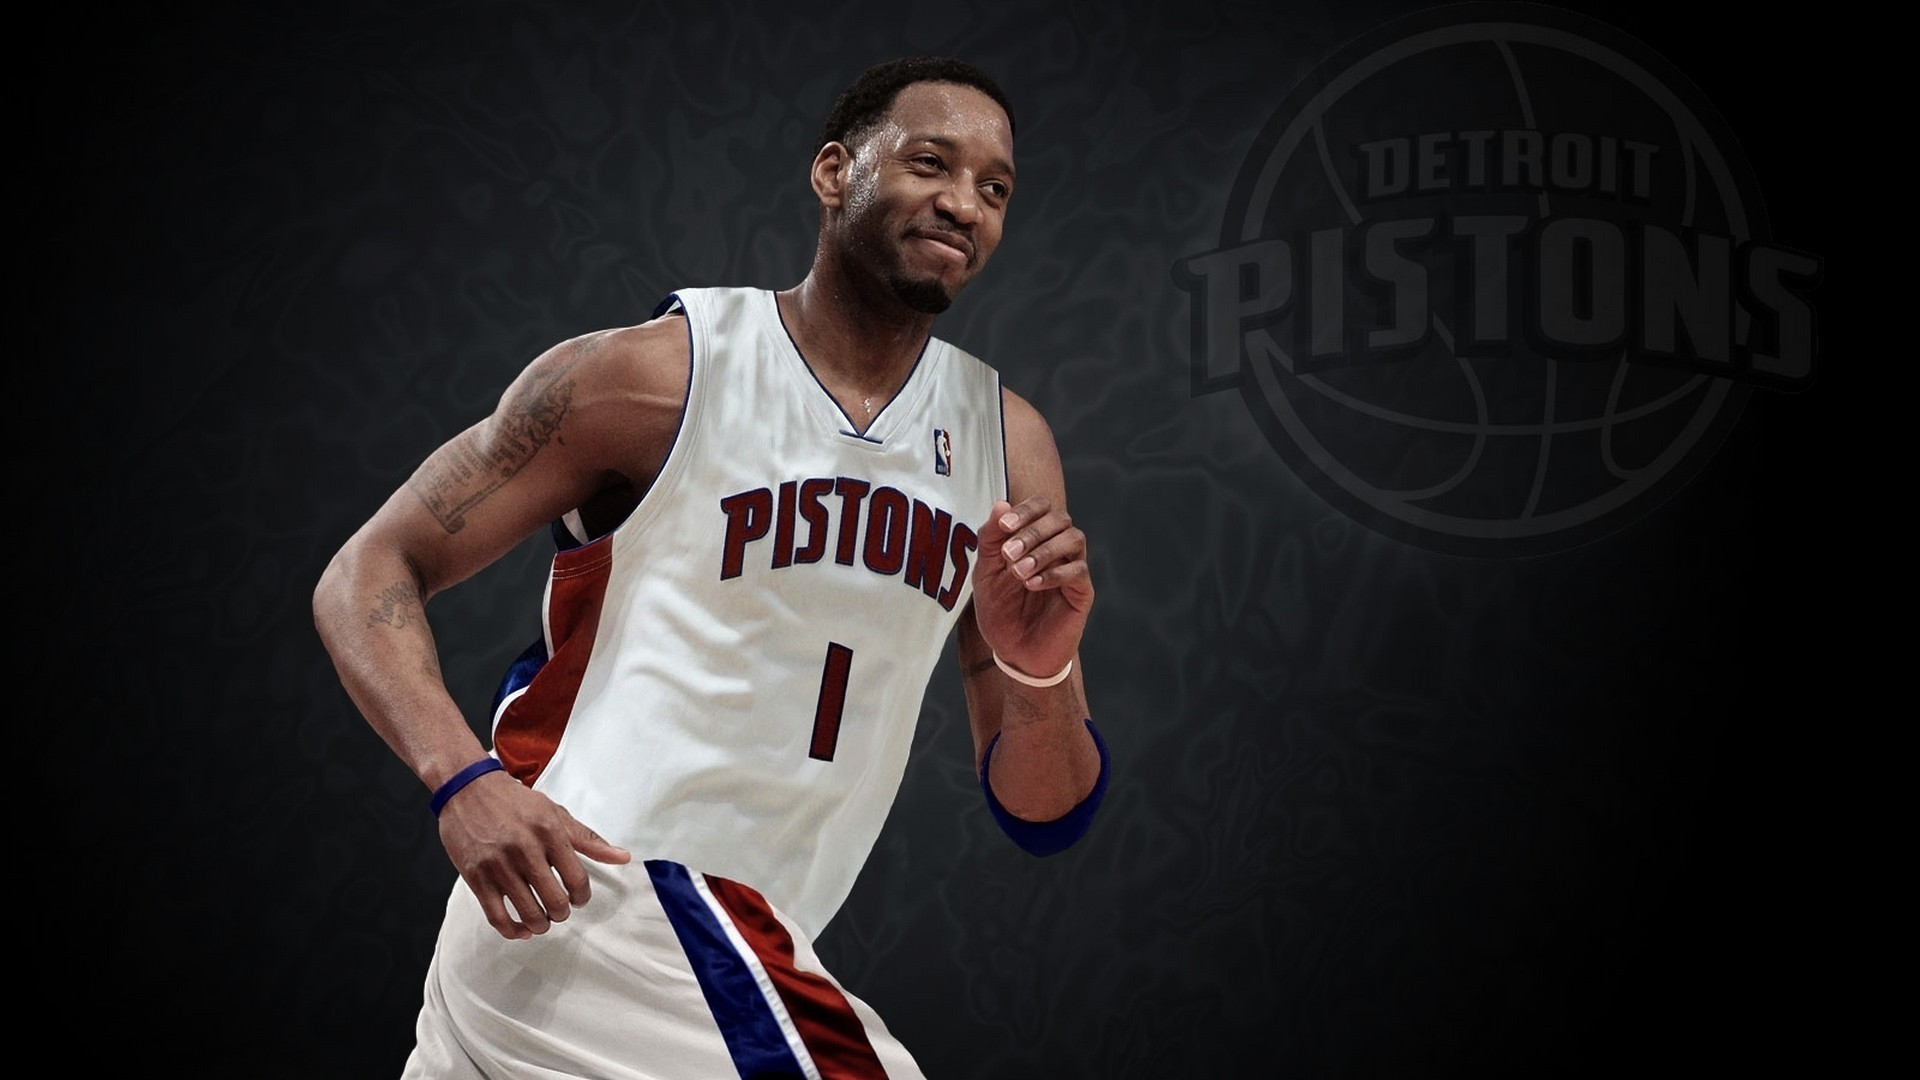 Detroit pistons nba tracy mcgrady basketball player wallpaper